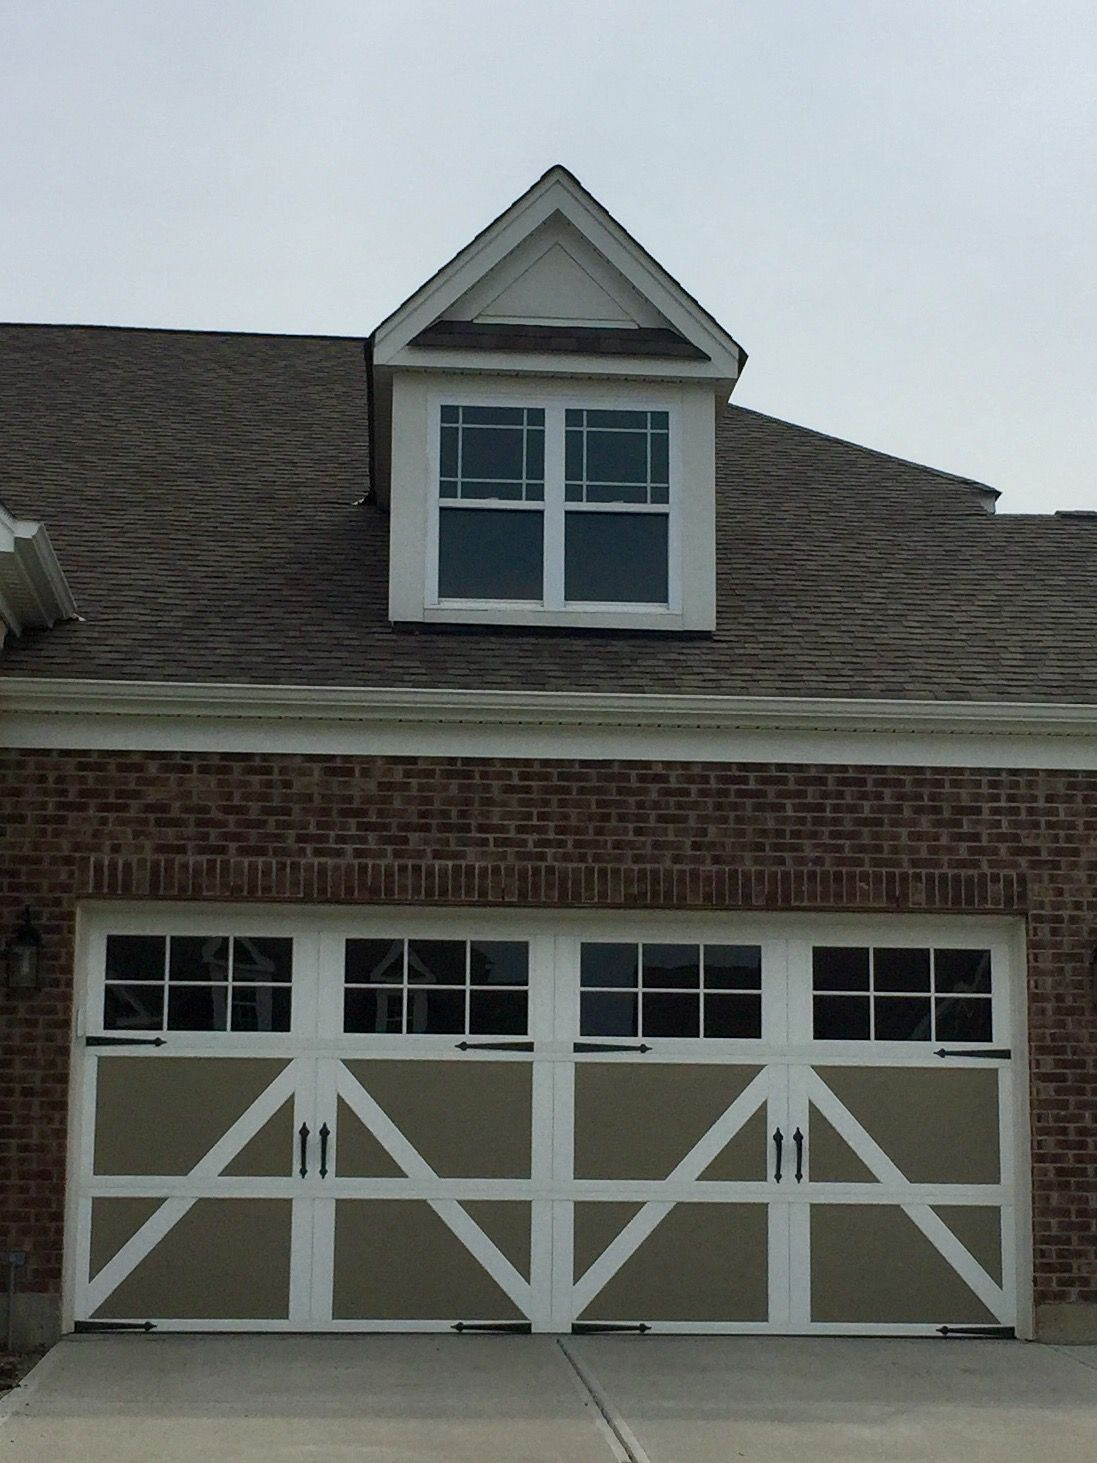 303 Carriage Garage Doors Clay With White Overlay 12 24 Window Square Spear Hardware Garage Doors Carriage Garage Doors Doors